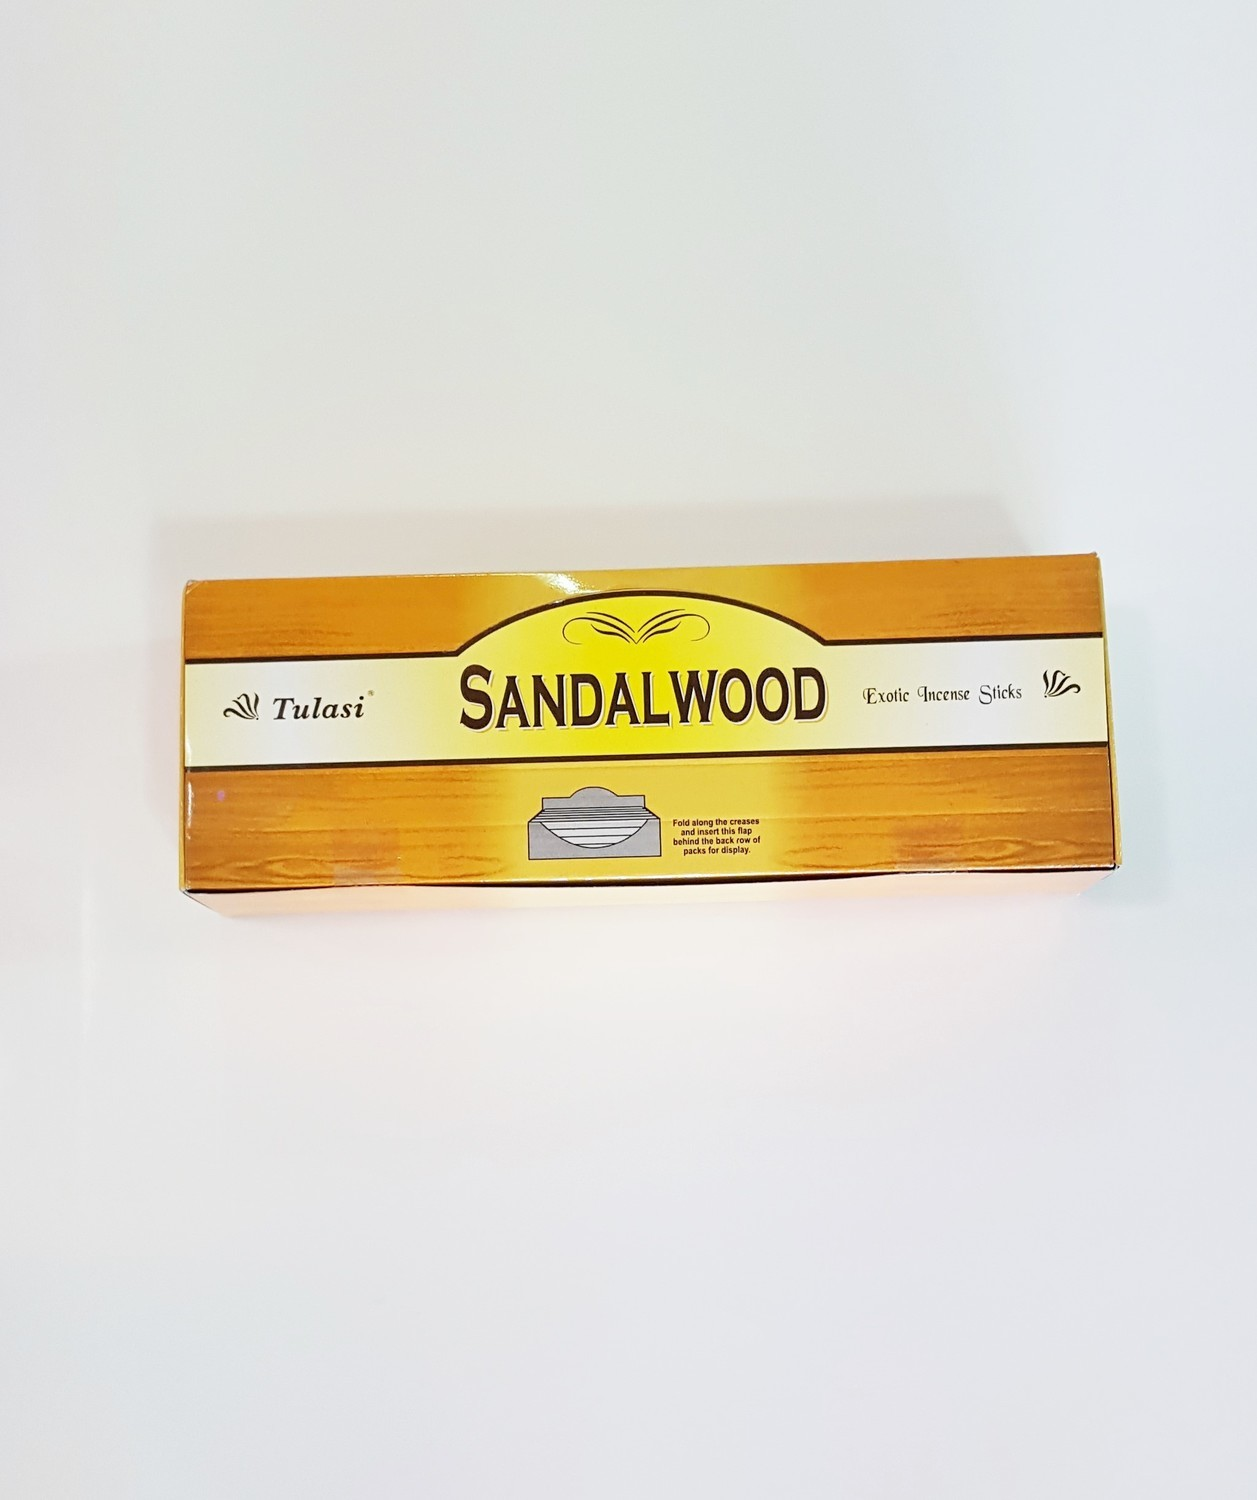 Tulasi Sandalwood Box - 6 packs